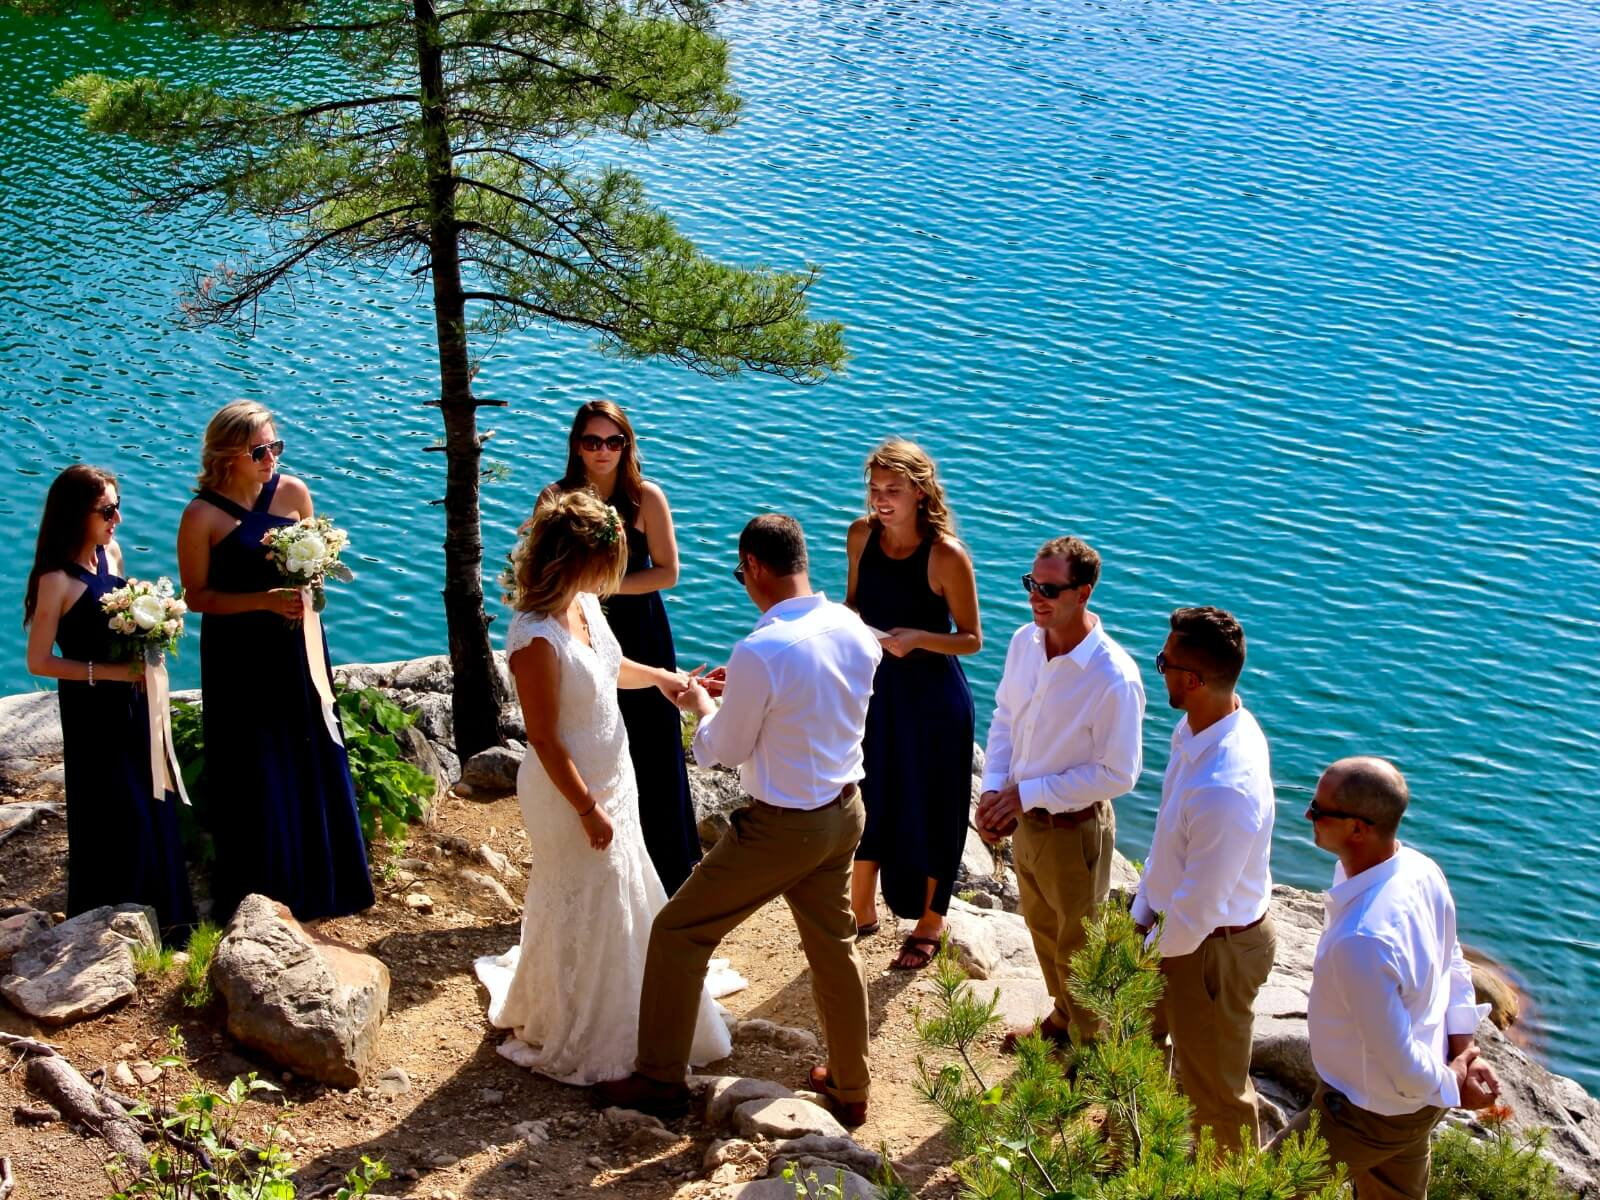 Bride and groom at their wedding ceremony overlooking exquisite Lake Topaz at Baie Fine Fjord.